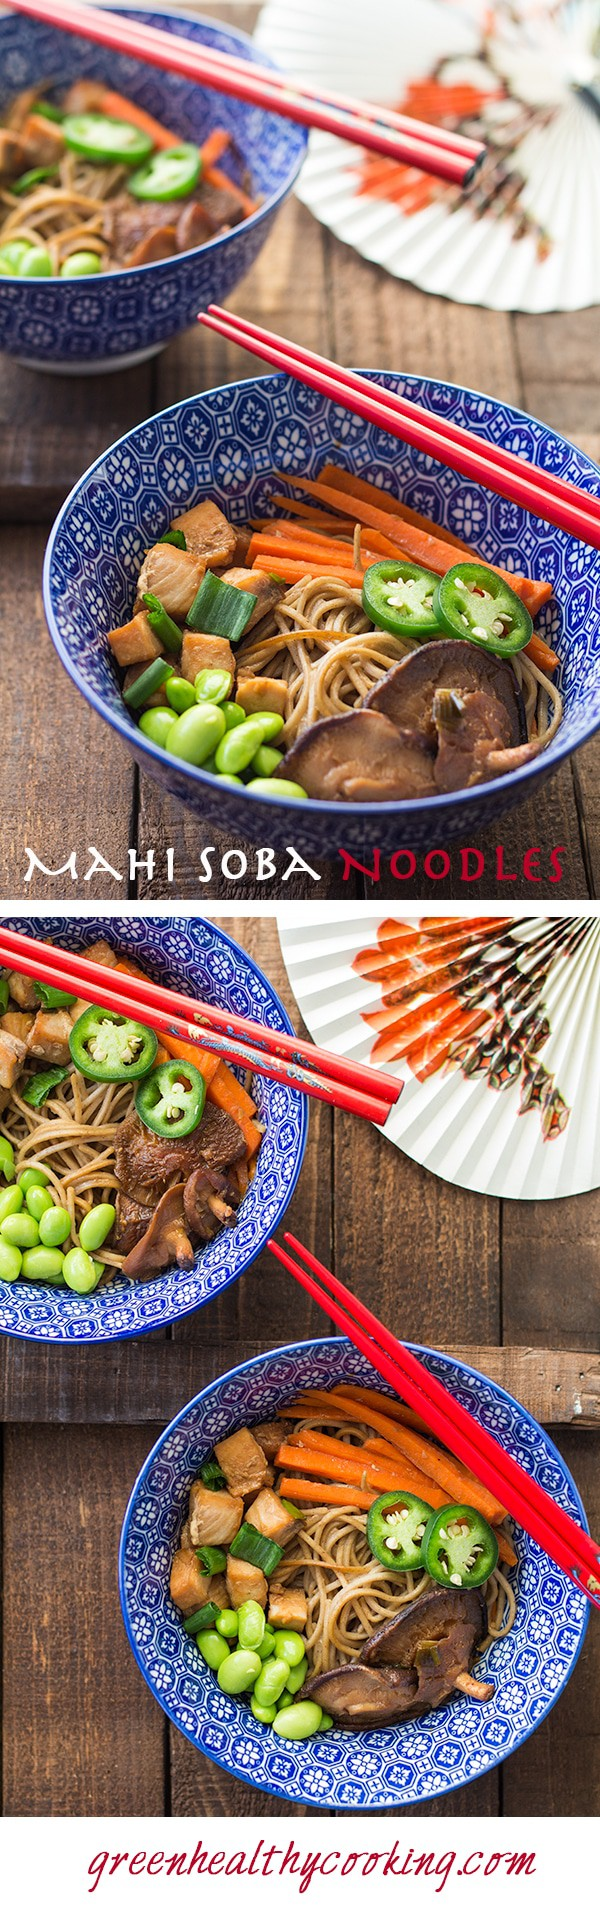 Collage of Mahi Mahi Soba Noodle Stir-Fry images with text overlay for Pinterest.